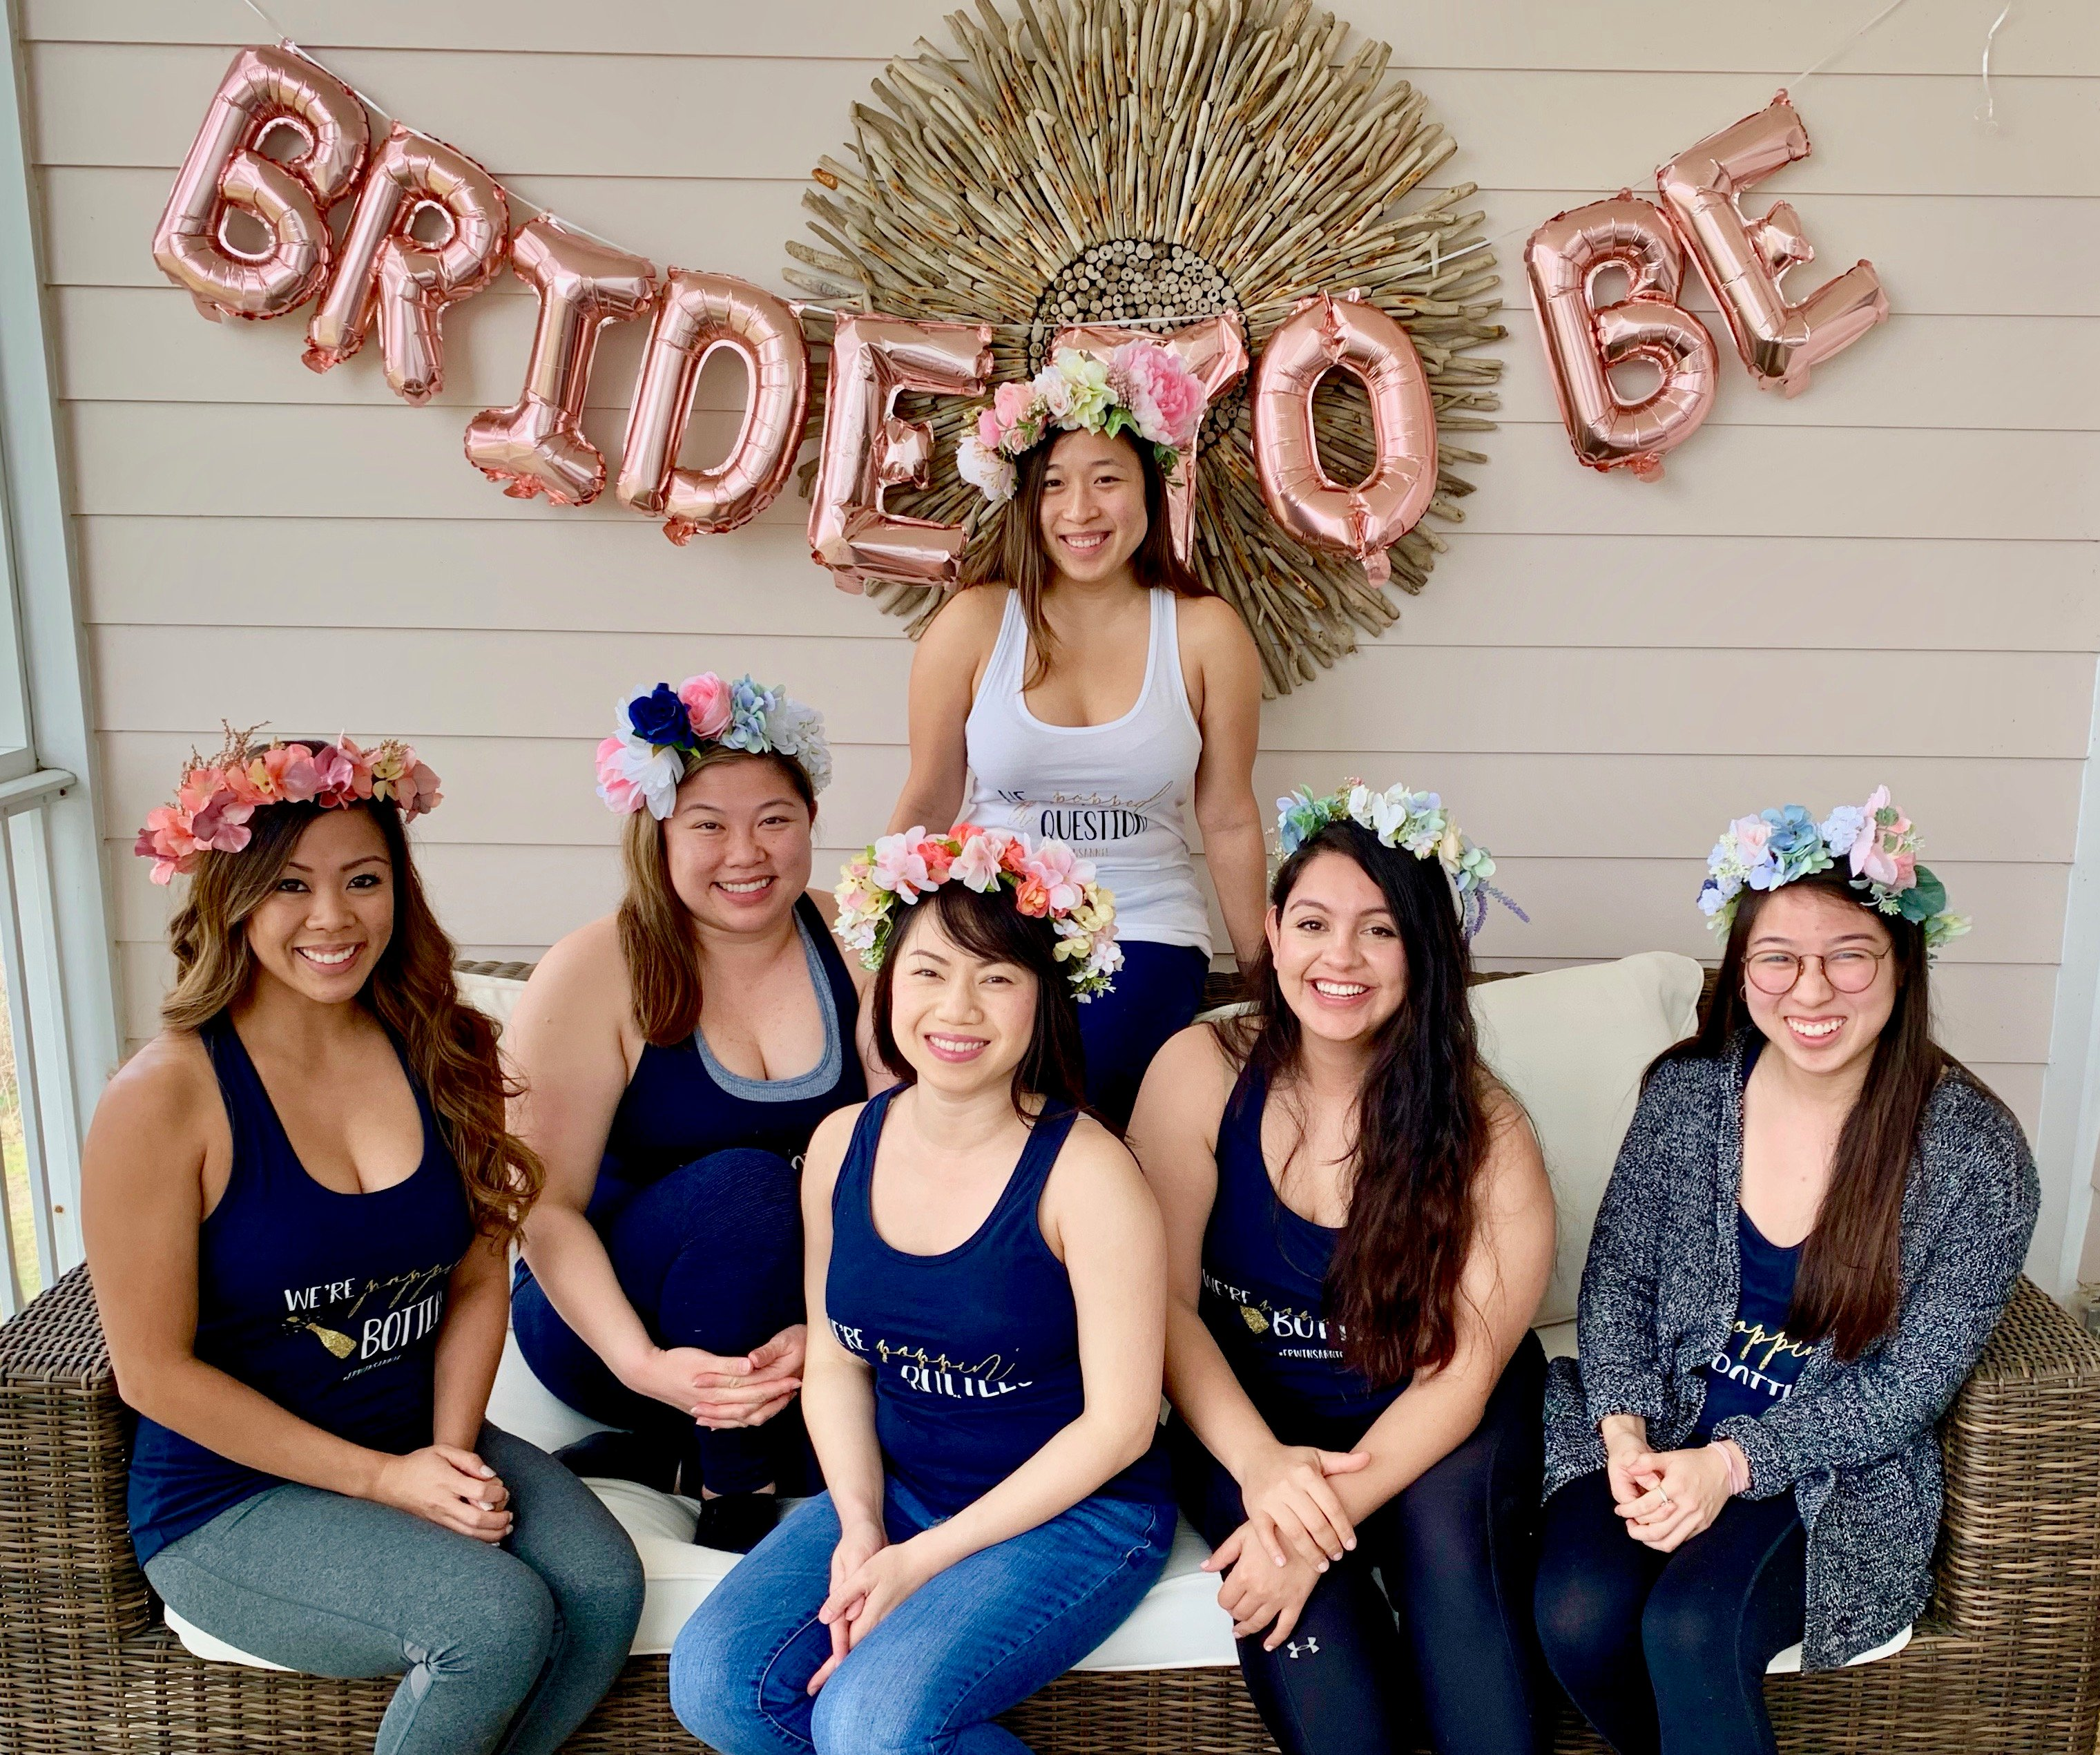 charleston sc bachelorette party ideas